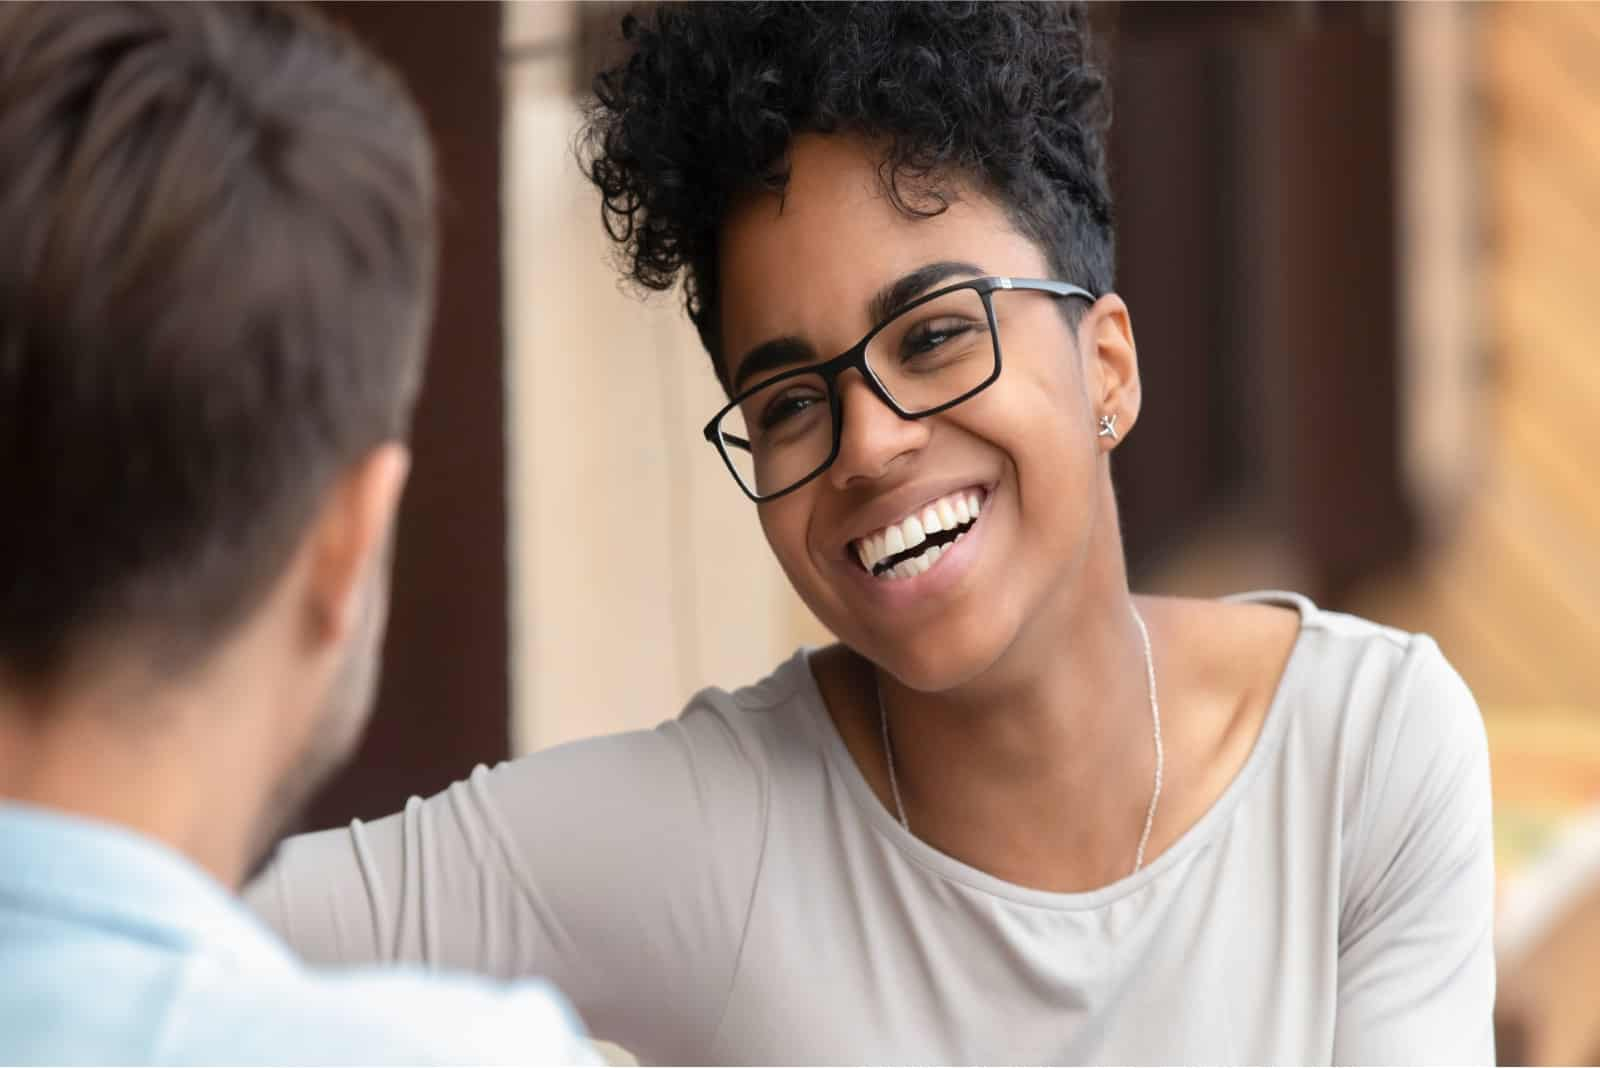 woman with curly hair smiling while looking at man